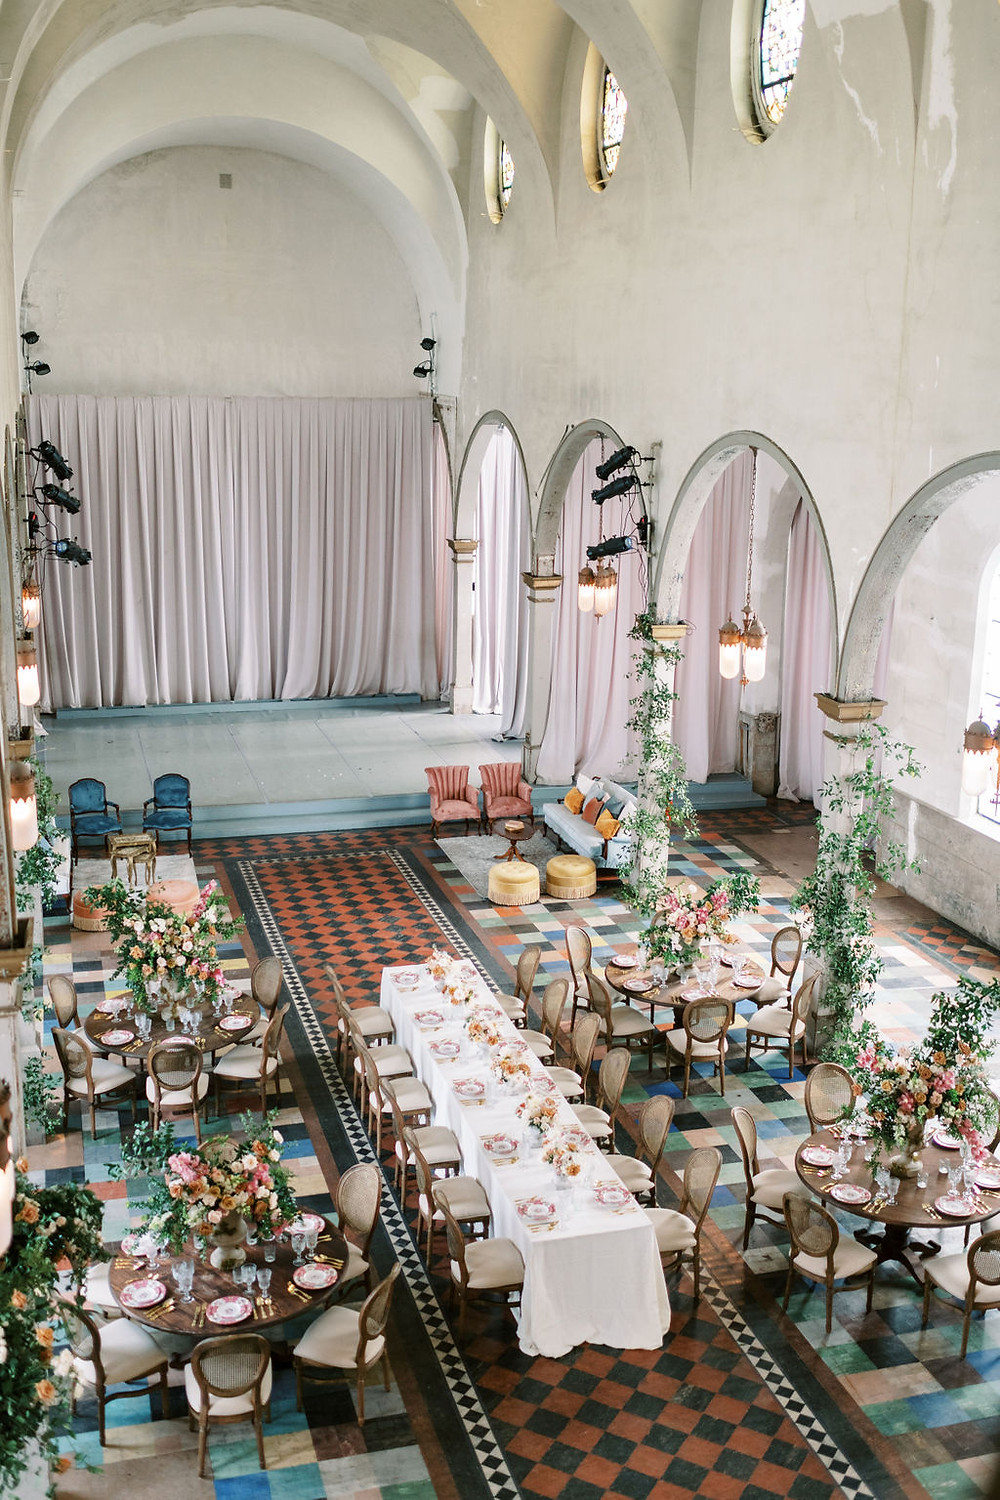 Seated Dinner for Bridgerton Inspired Wedding at the Marigny Opera House in New Orleans with Decor, Lounge Spaces, and Vintage Furniture by Lovegood Rentals Featuring Caned Louis Chairs, Mahogany Round Tables and Overgrown Florals